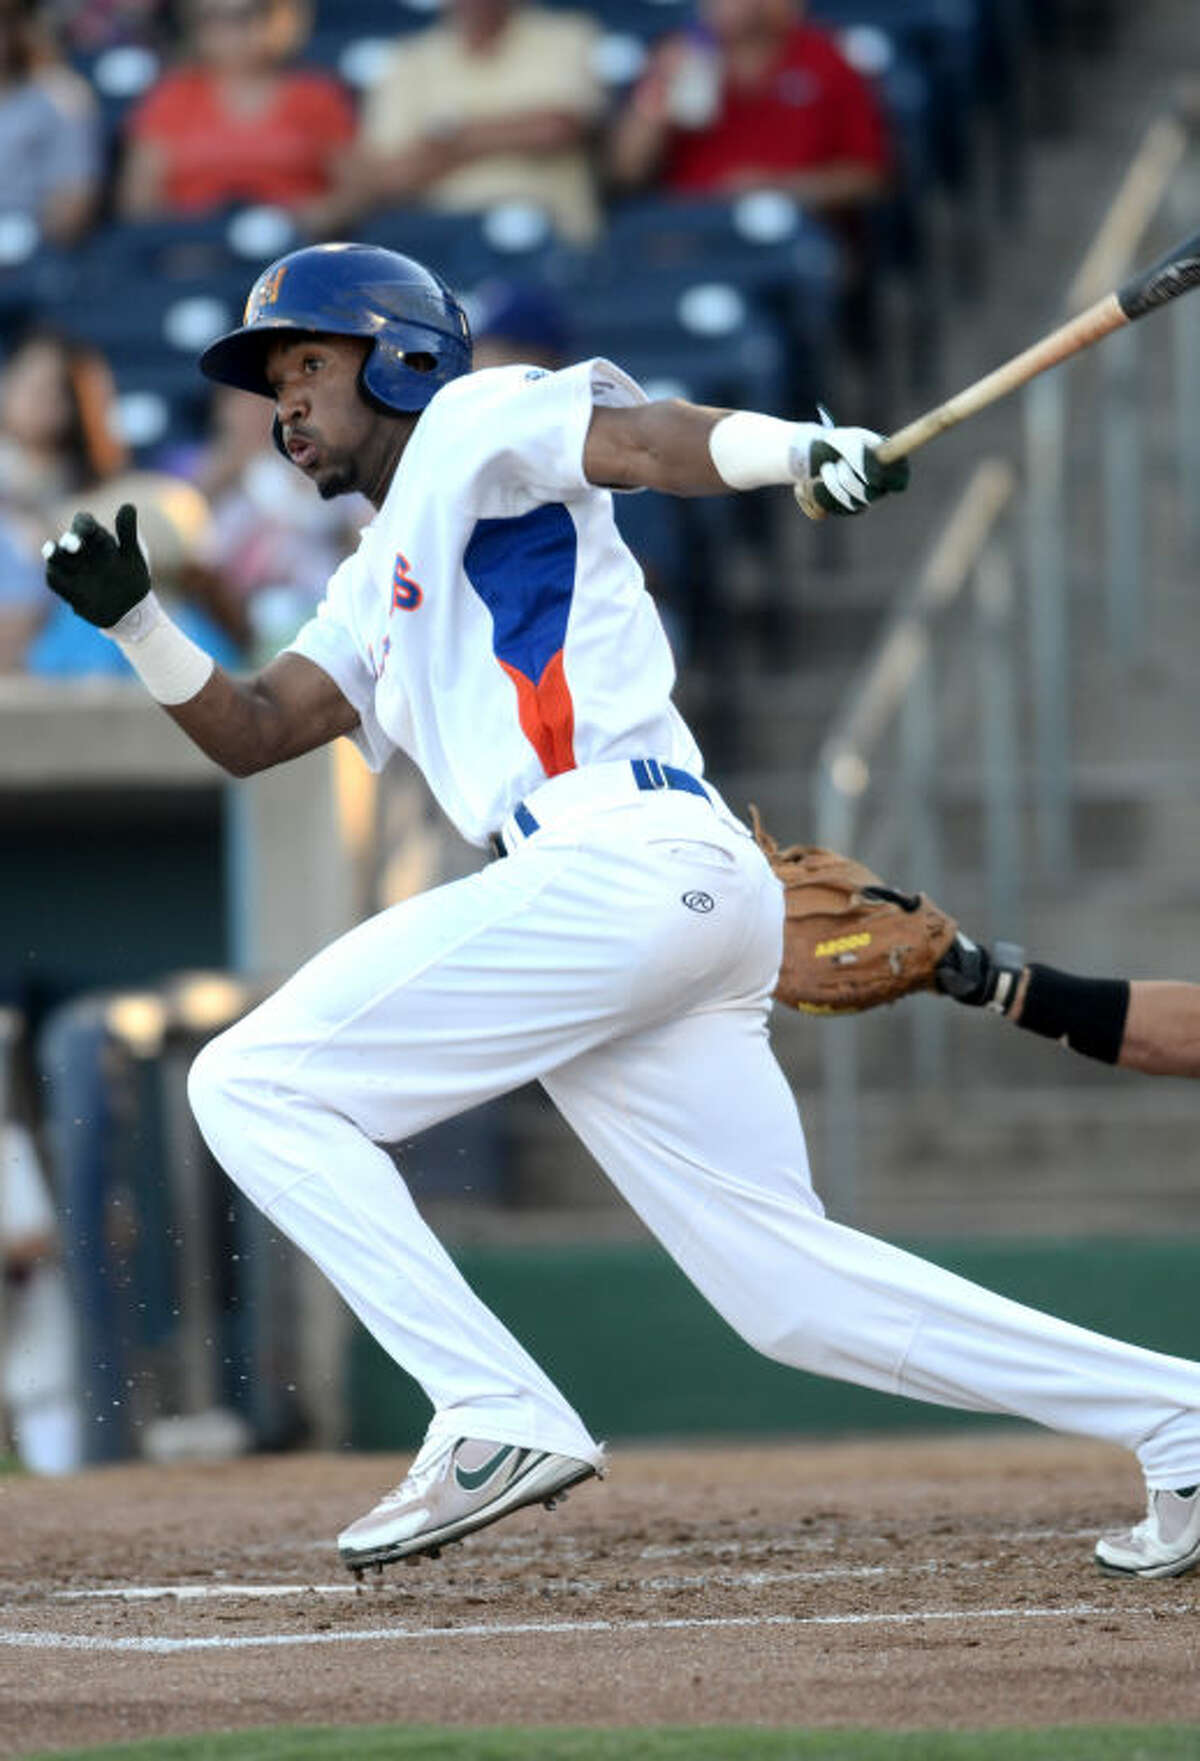 Rockhounds' D'Arby Myers puts the ball in play against the Tulsa Drillers Wednesday at Citibank Ballpark. James Durbin/Reporter-Telegram